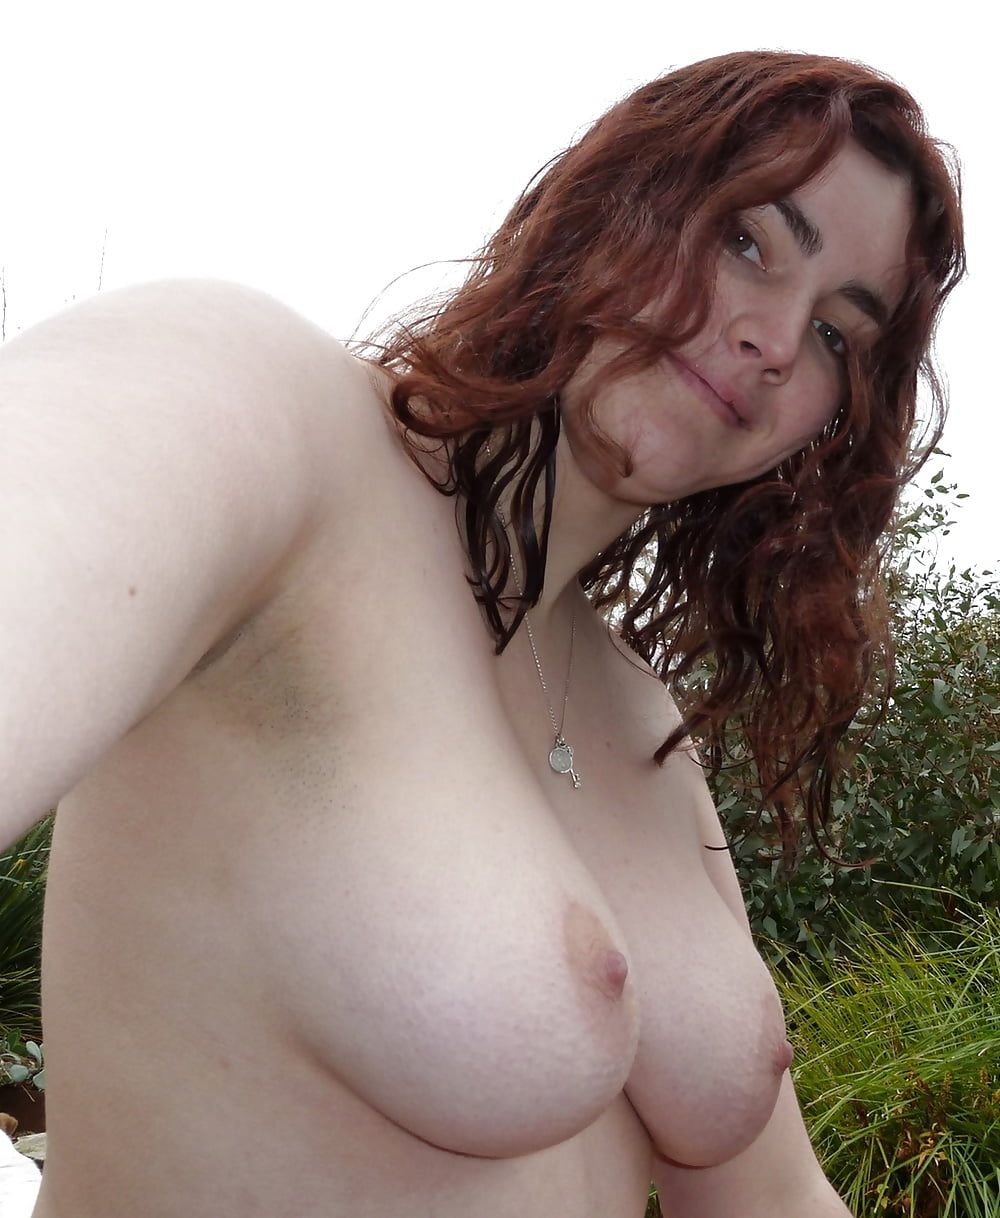 hot-redhead-voyeur-bottle-in-pussy-more-babes